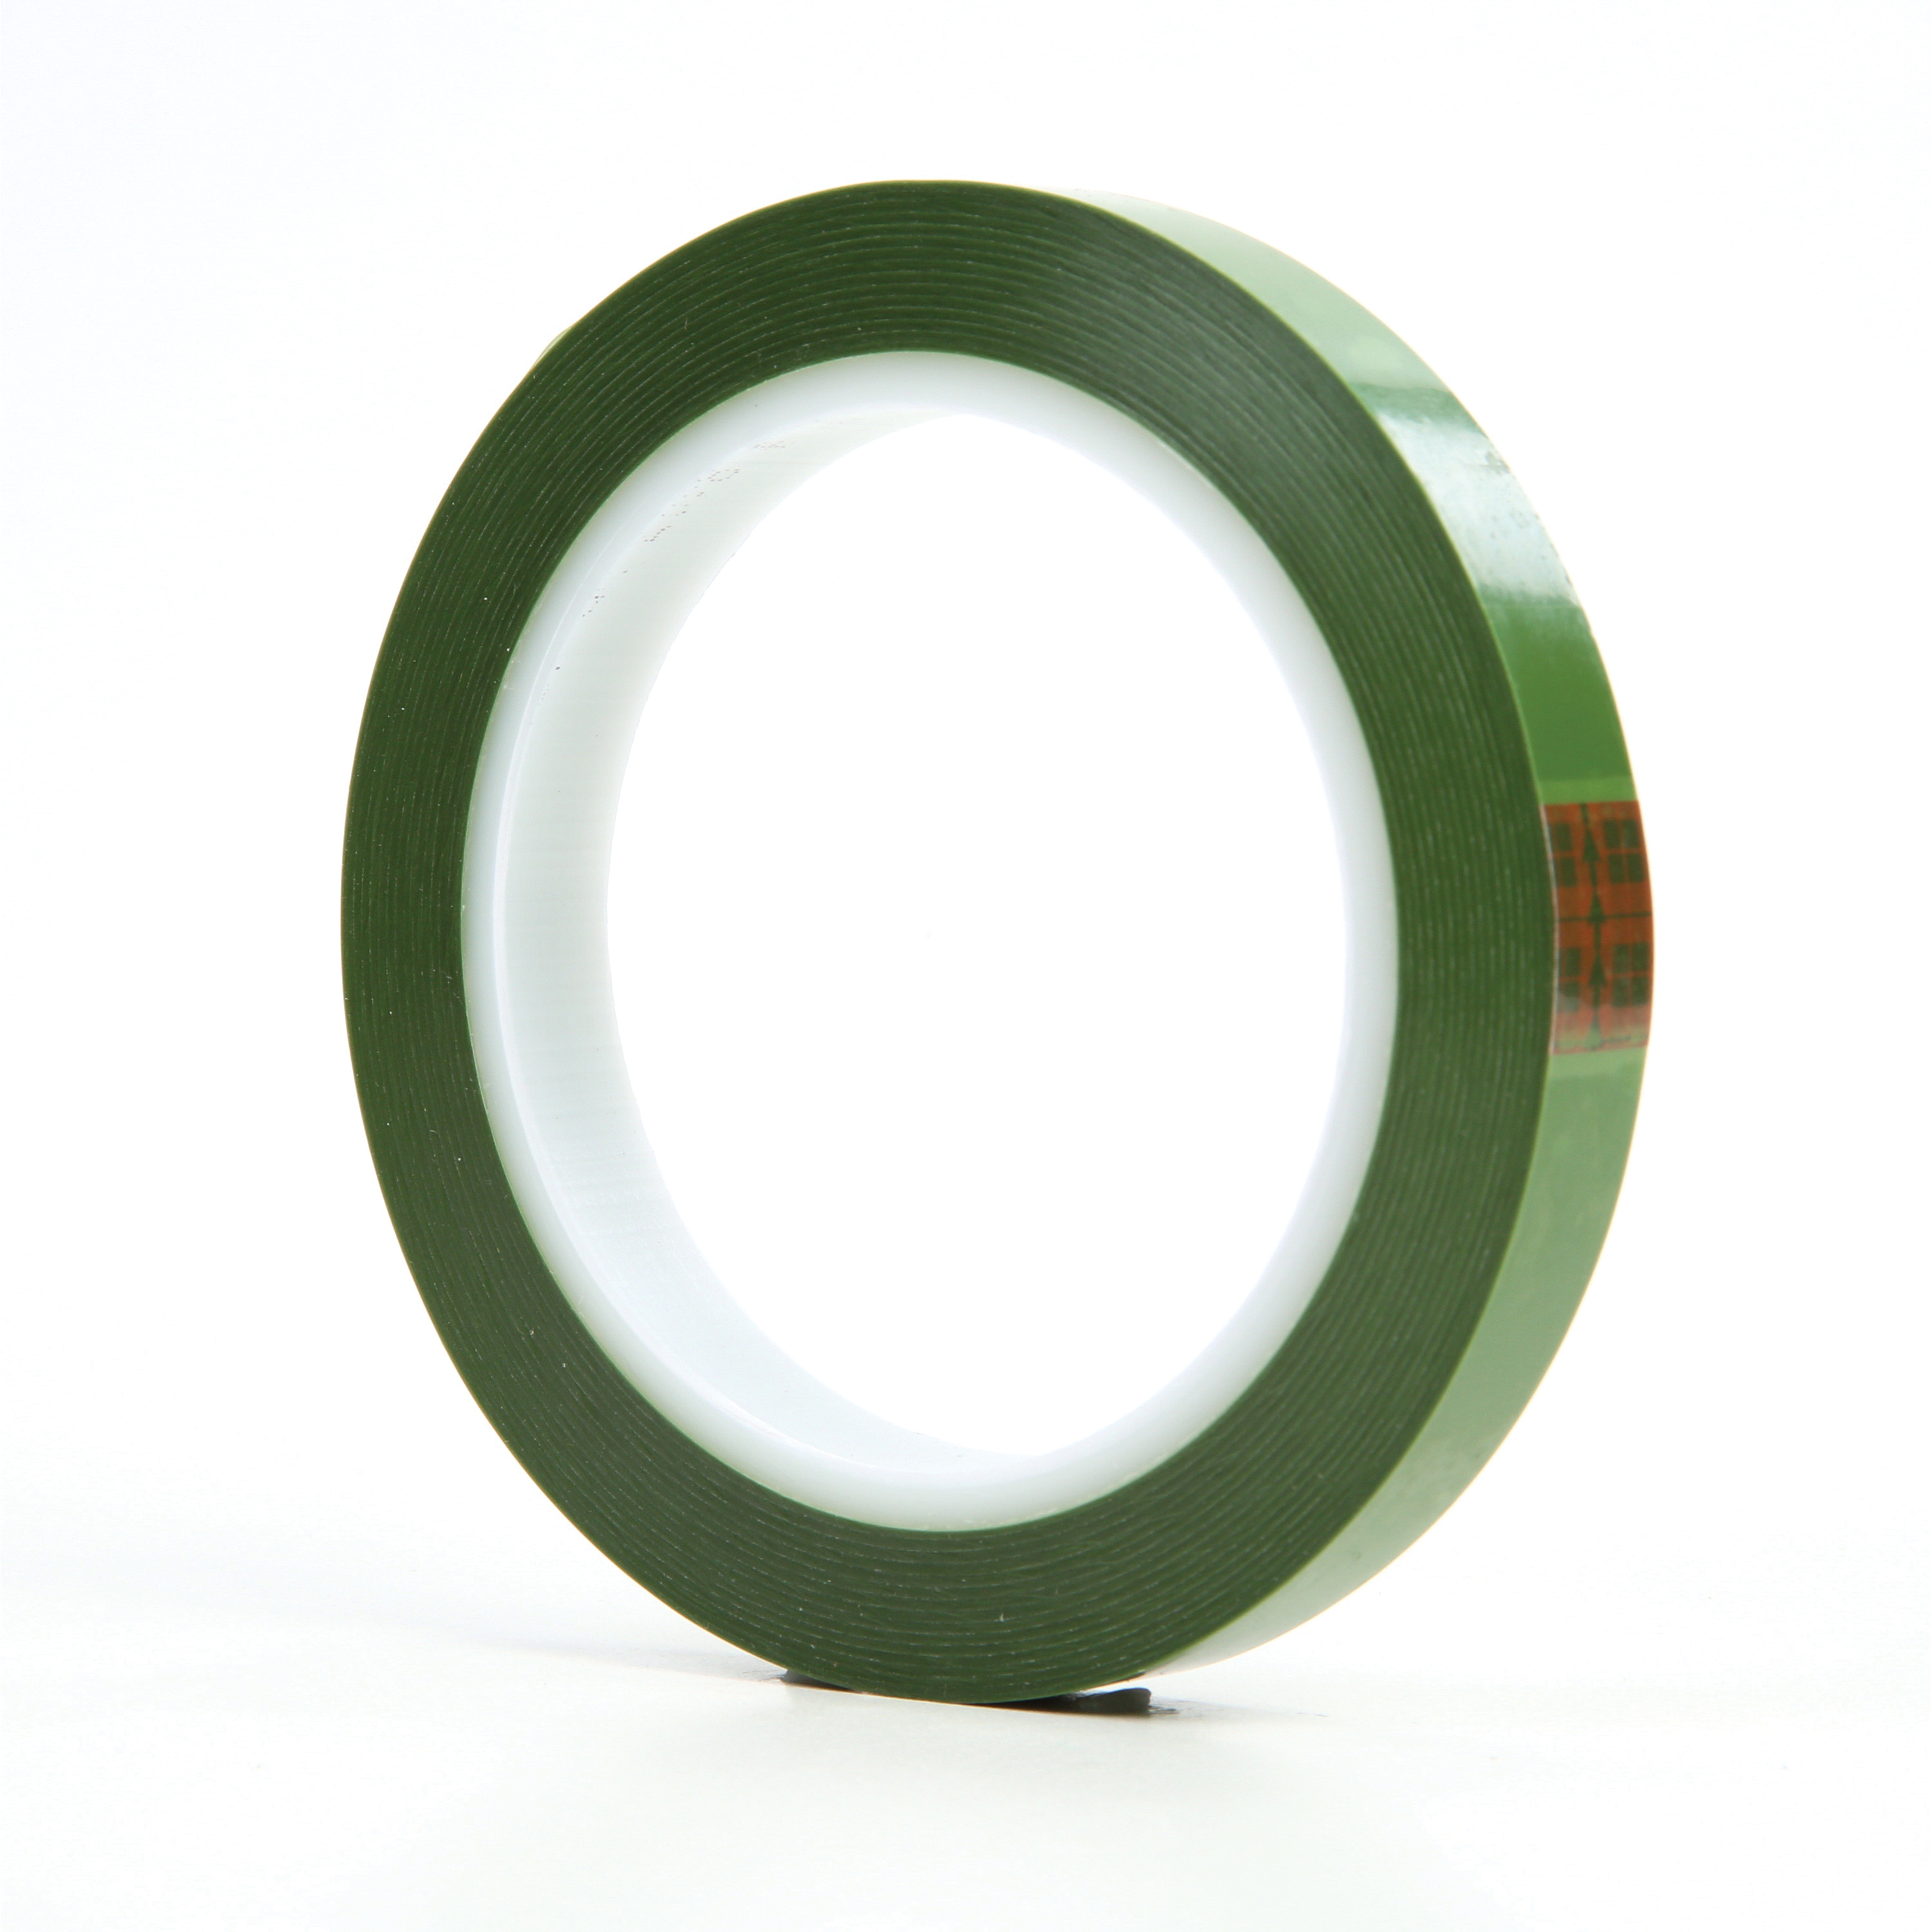 3M™ 021200-61456 Tear-Resistant Masking Tape, 72 yd L x 1/2 in W, 2.4 mil THK, Silicone Adhesive, 1.4 mil Polyester Backing